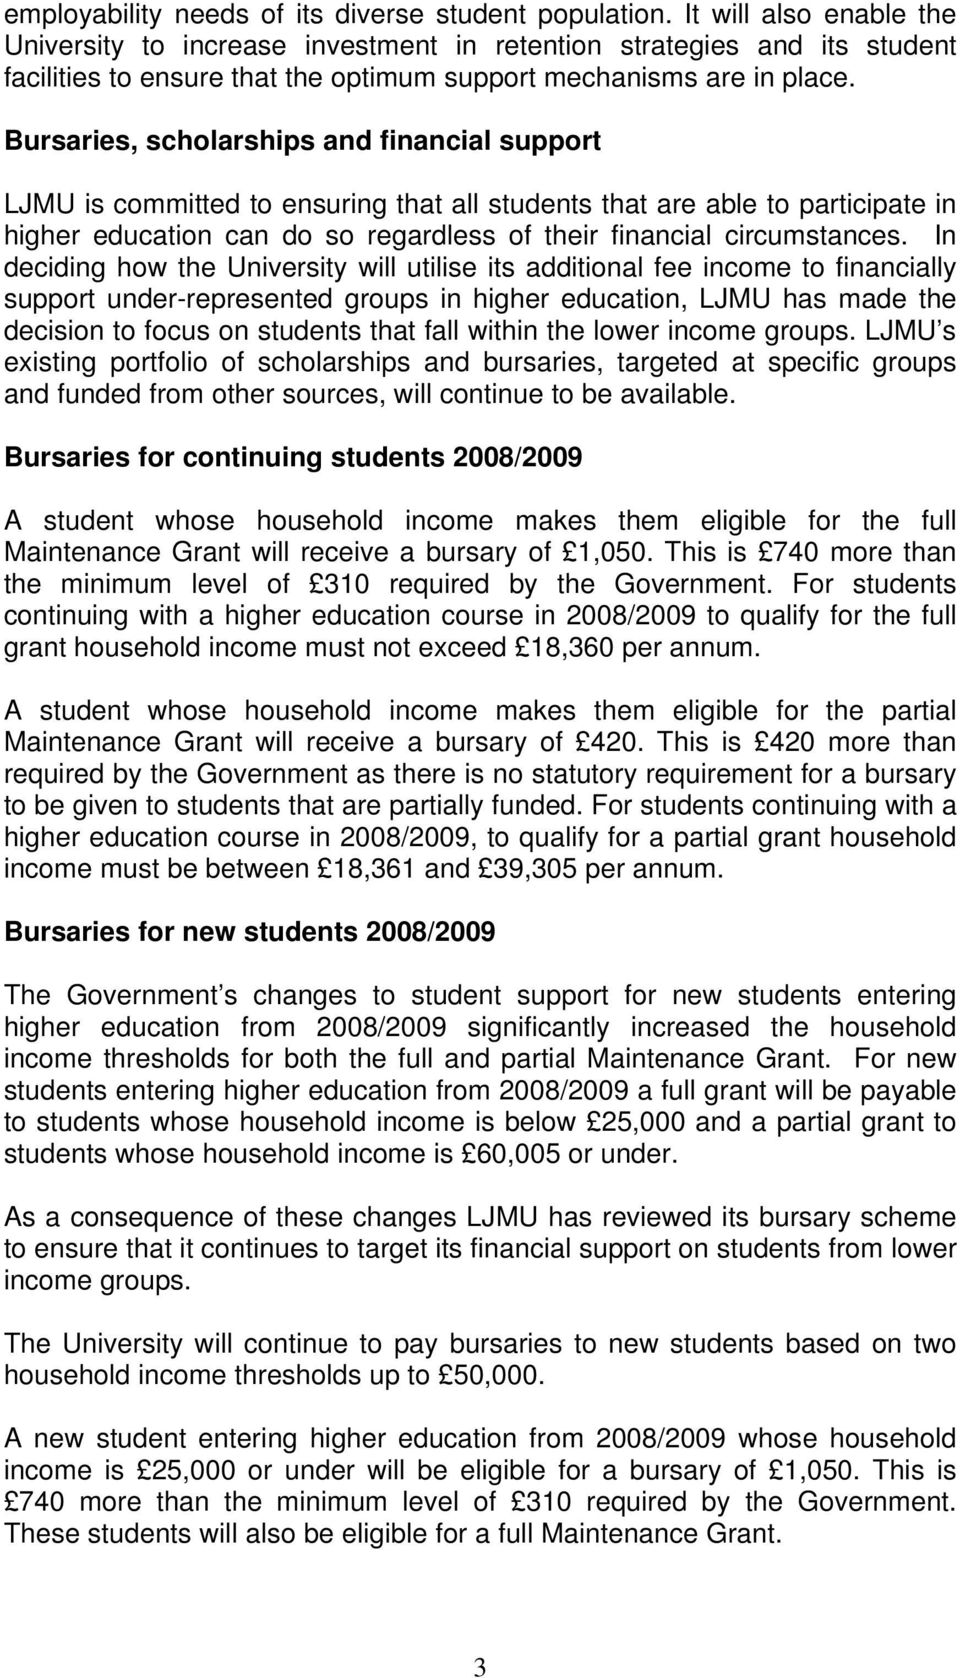 Bursaries, scholarships and financial support LJMU is committed to ensuring that all students that are able to participate in higher education can do so regardless of their financial circumstances.